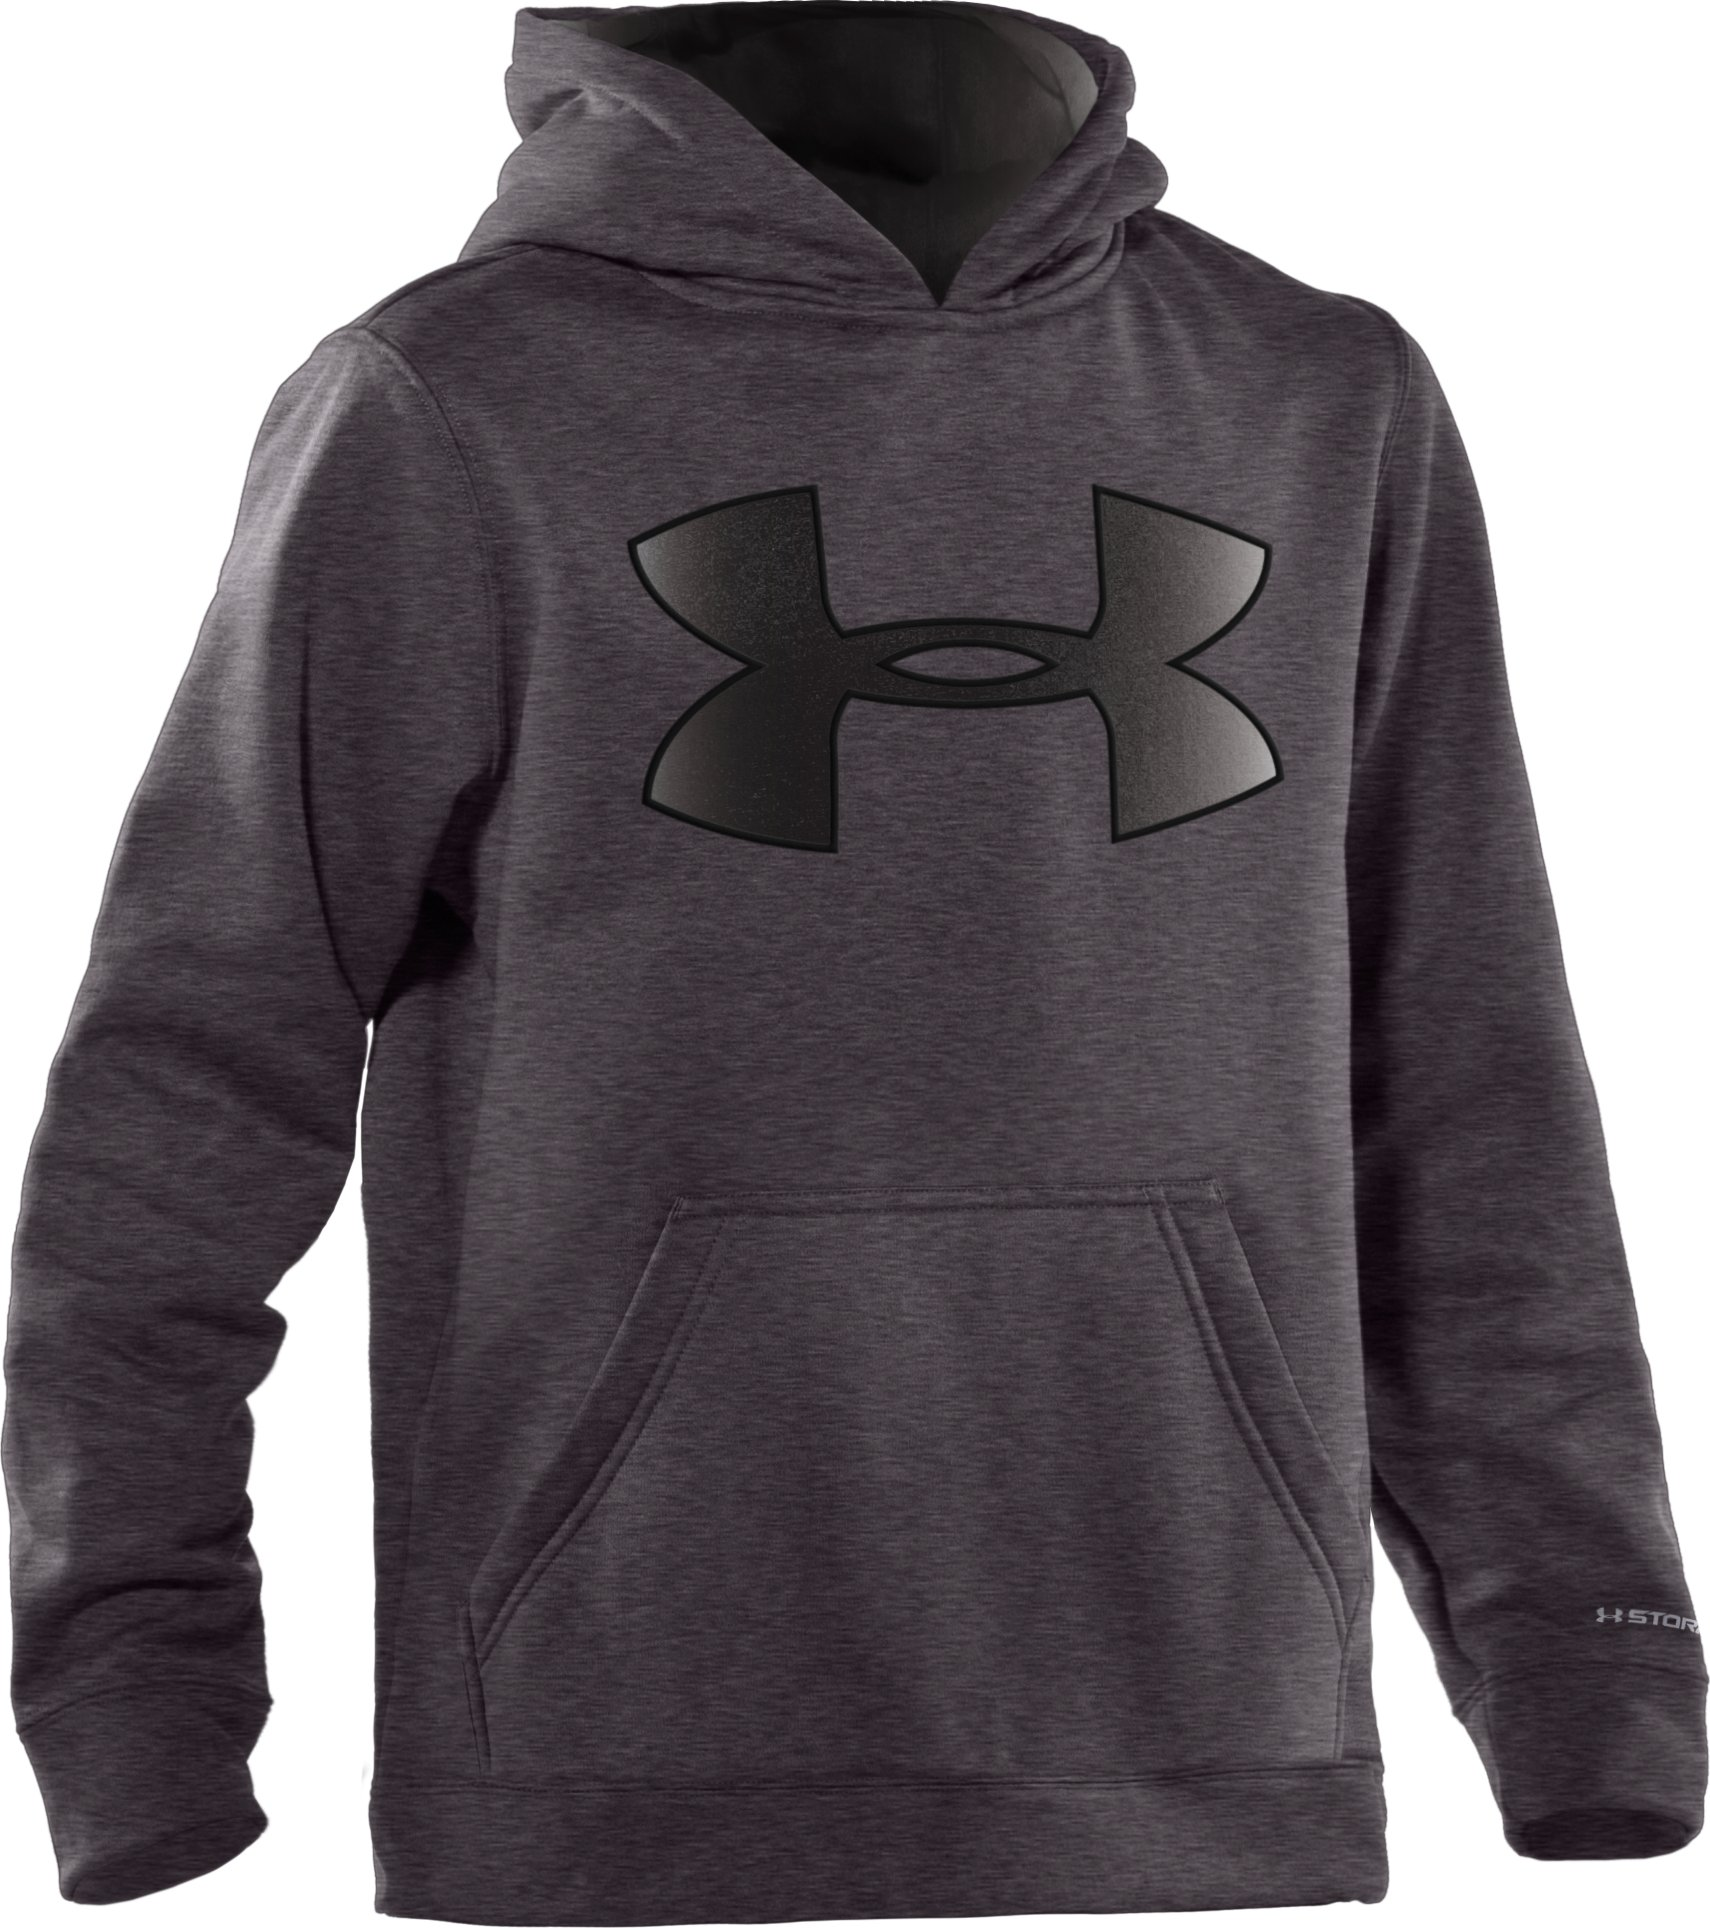 Boys' Armour® Fleece Storm Big Logo Pullover Hoodie, Carbon Heather, zoomed image